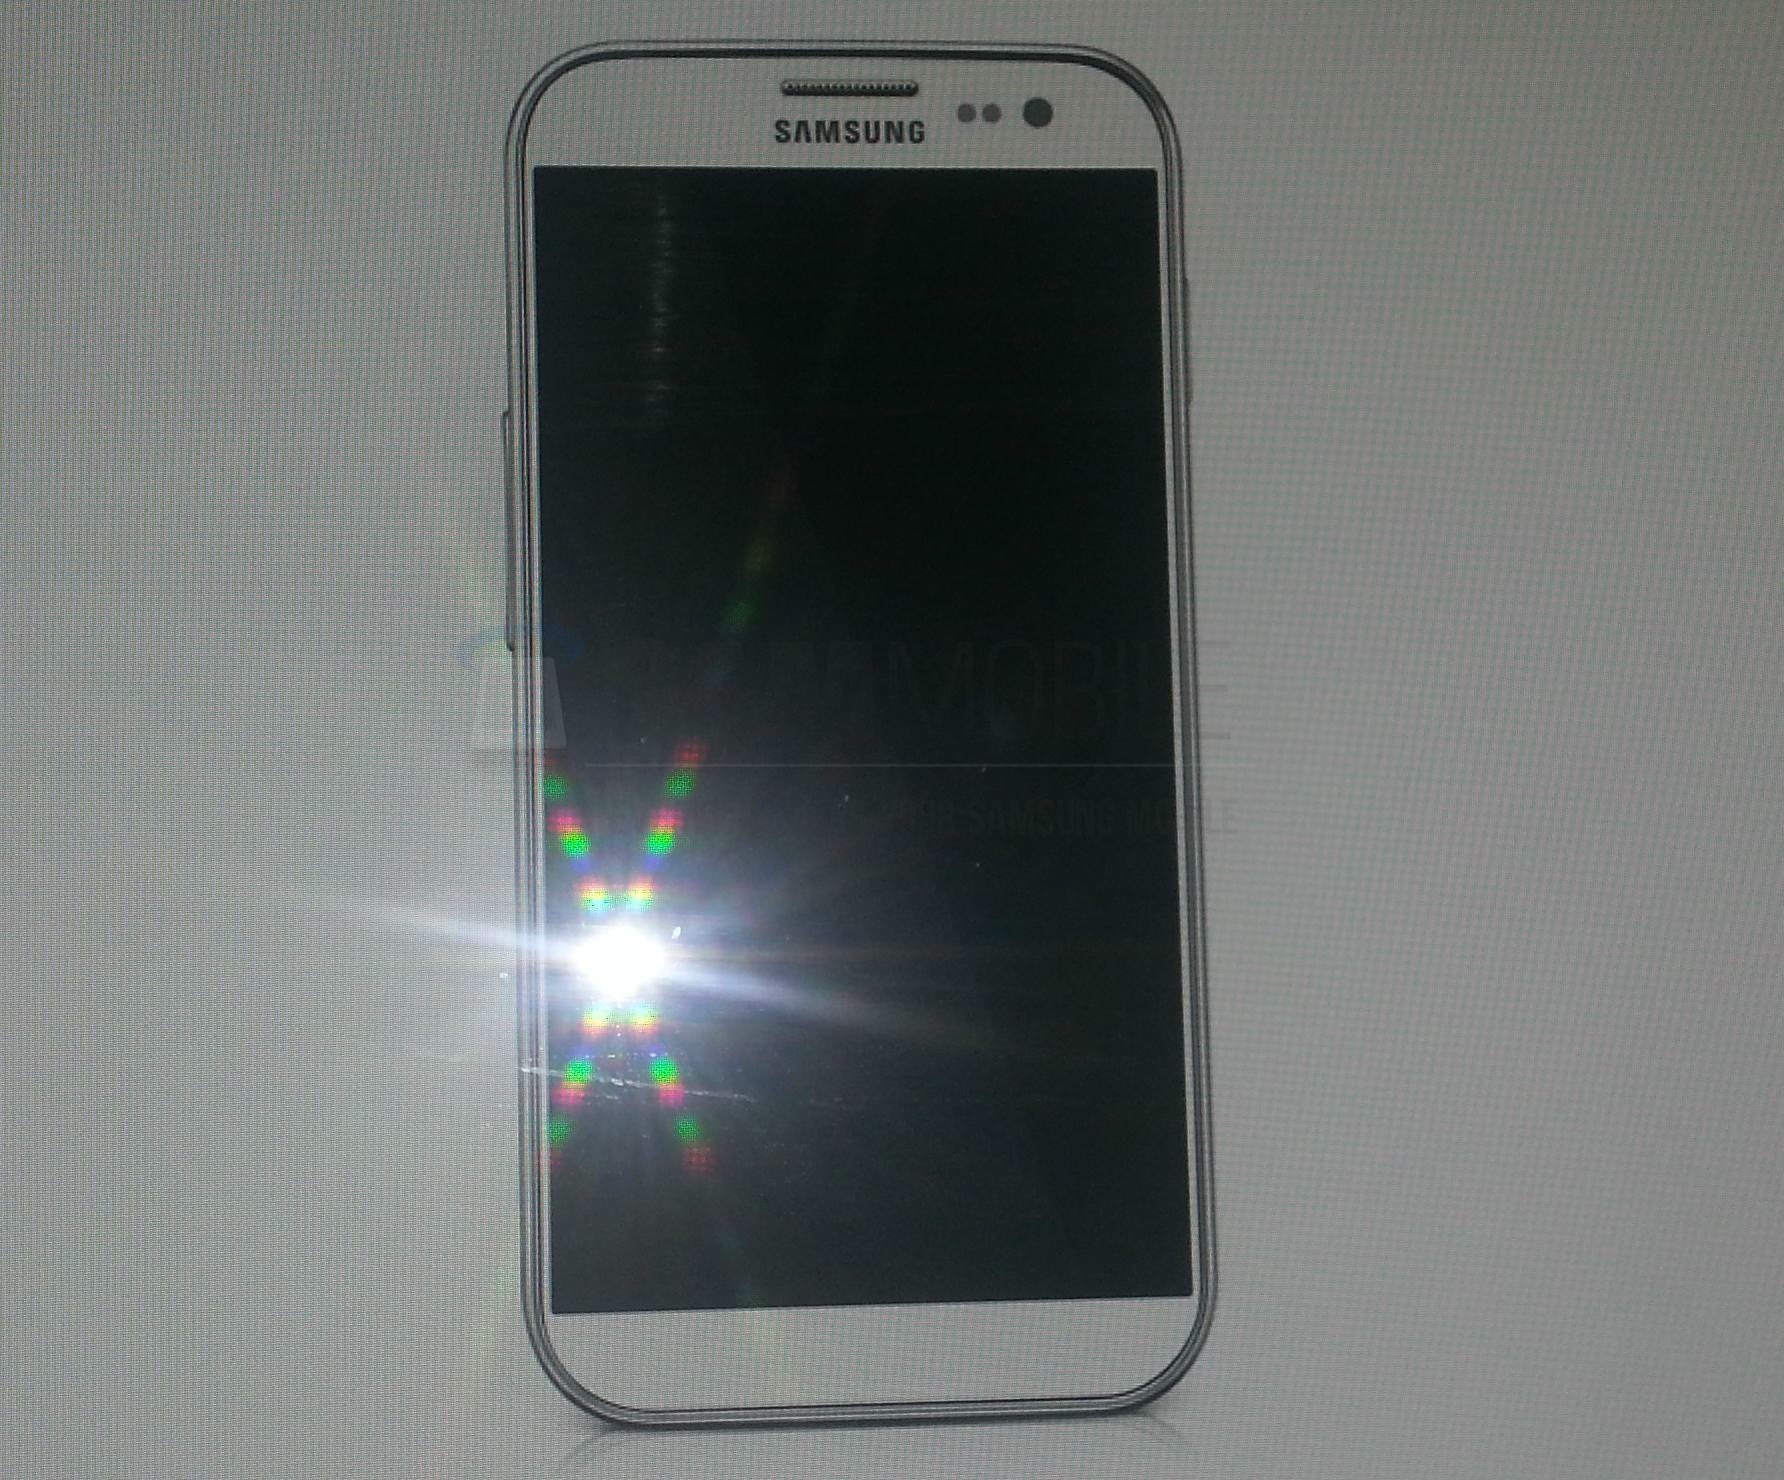 galaxy s iv leak (sammobile 001)